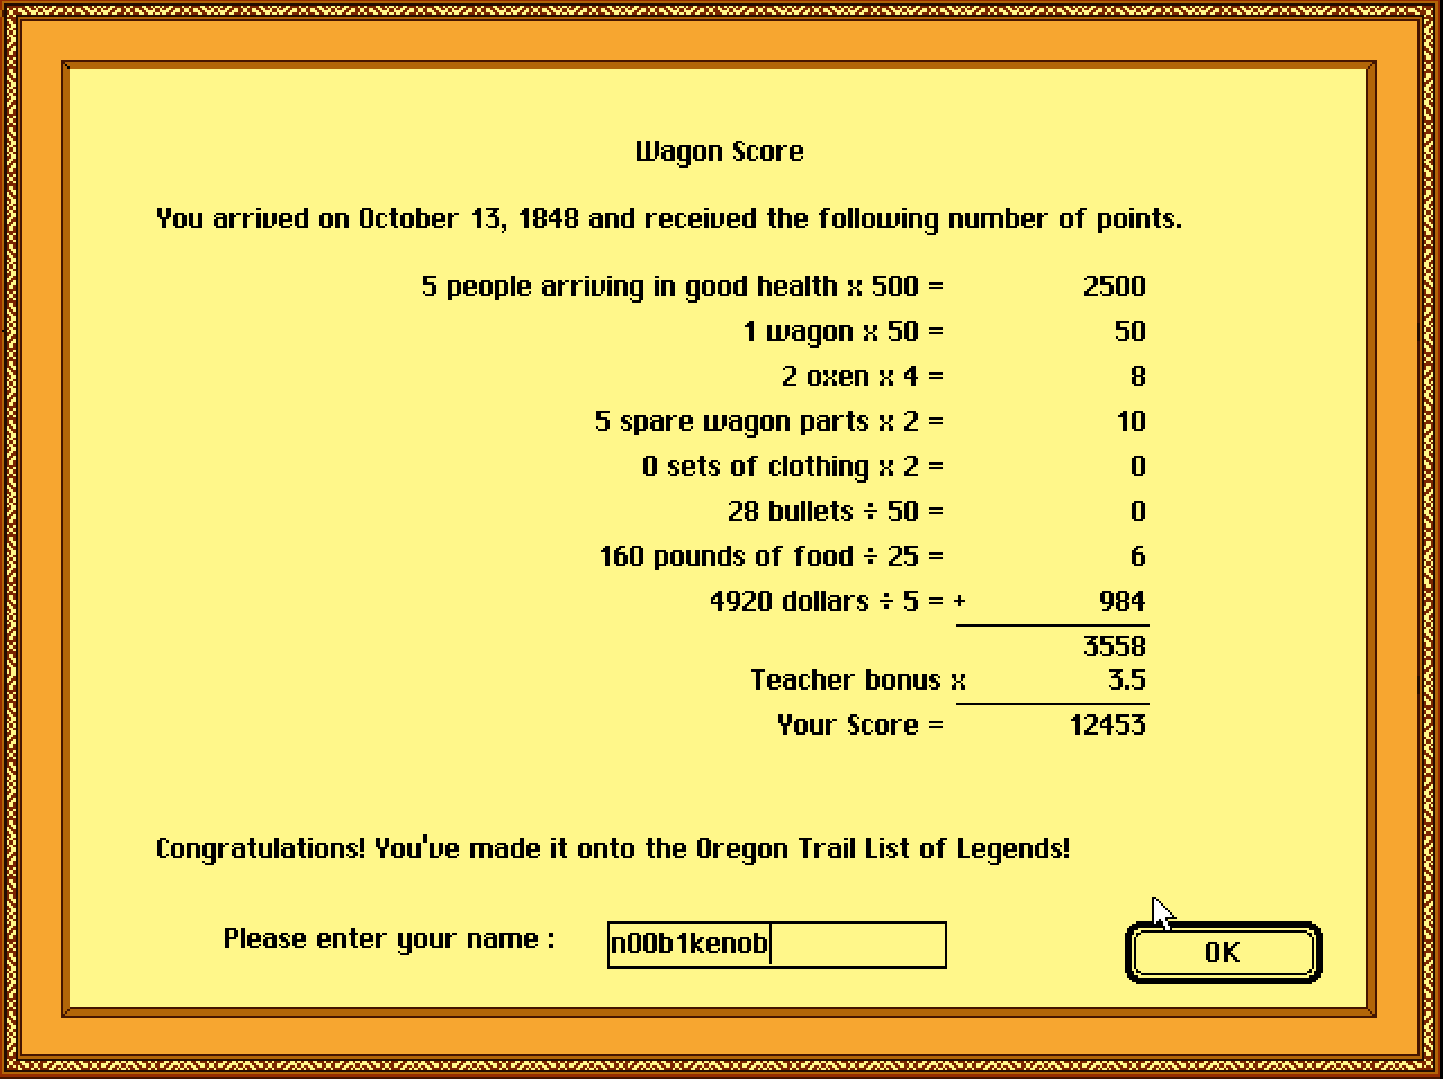 The Oregon Trail Deluxe 12,453 points